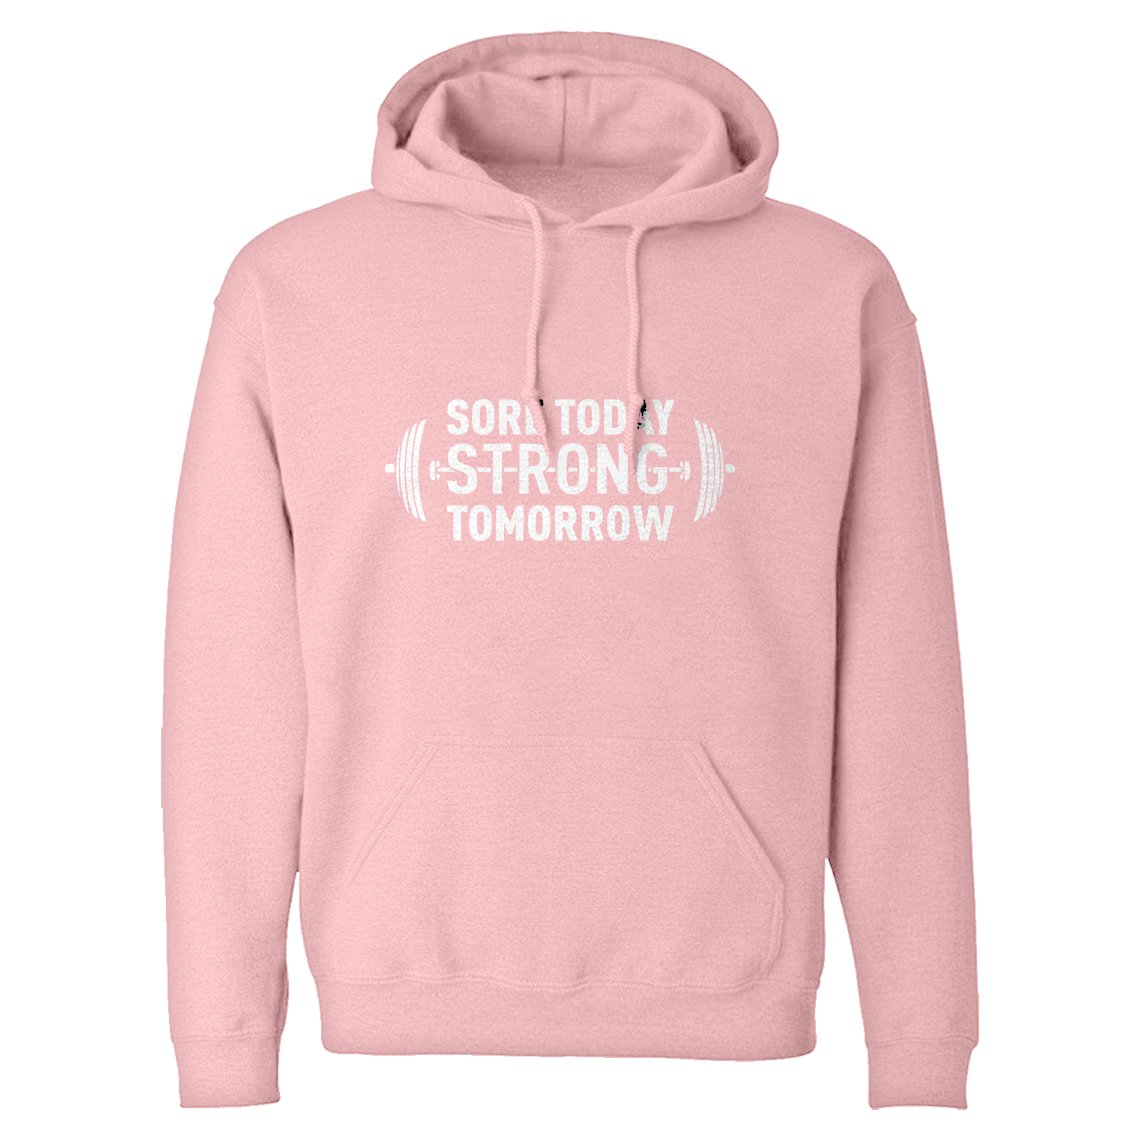 Indica Plateau Hoodie Sore Today Strong Tomorrow Large Light Pink Hooded Sweatshirt